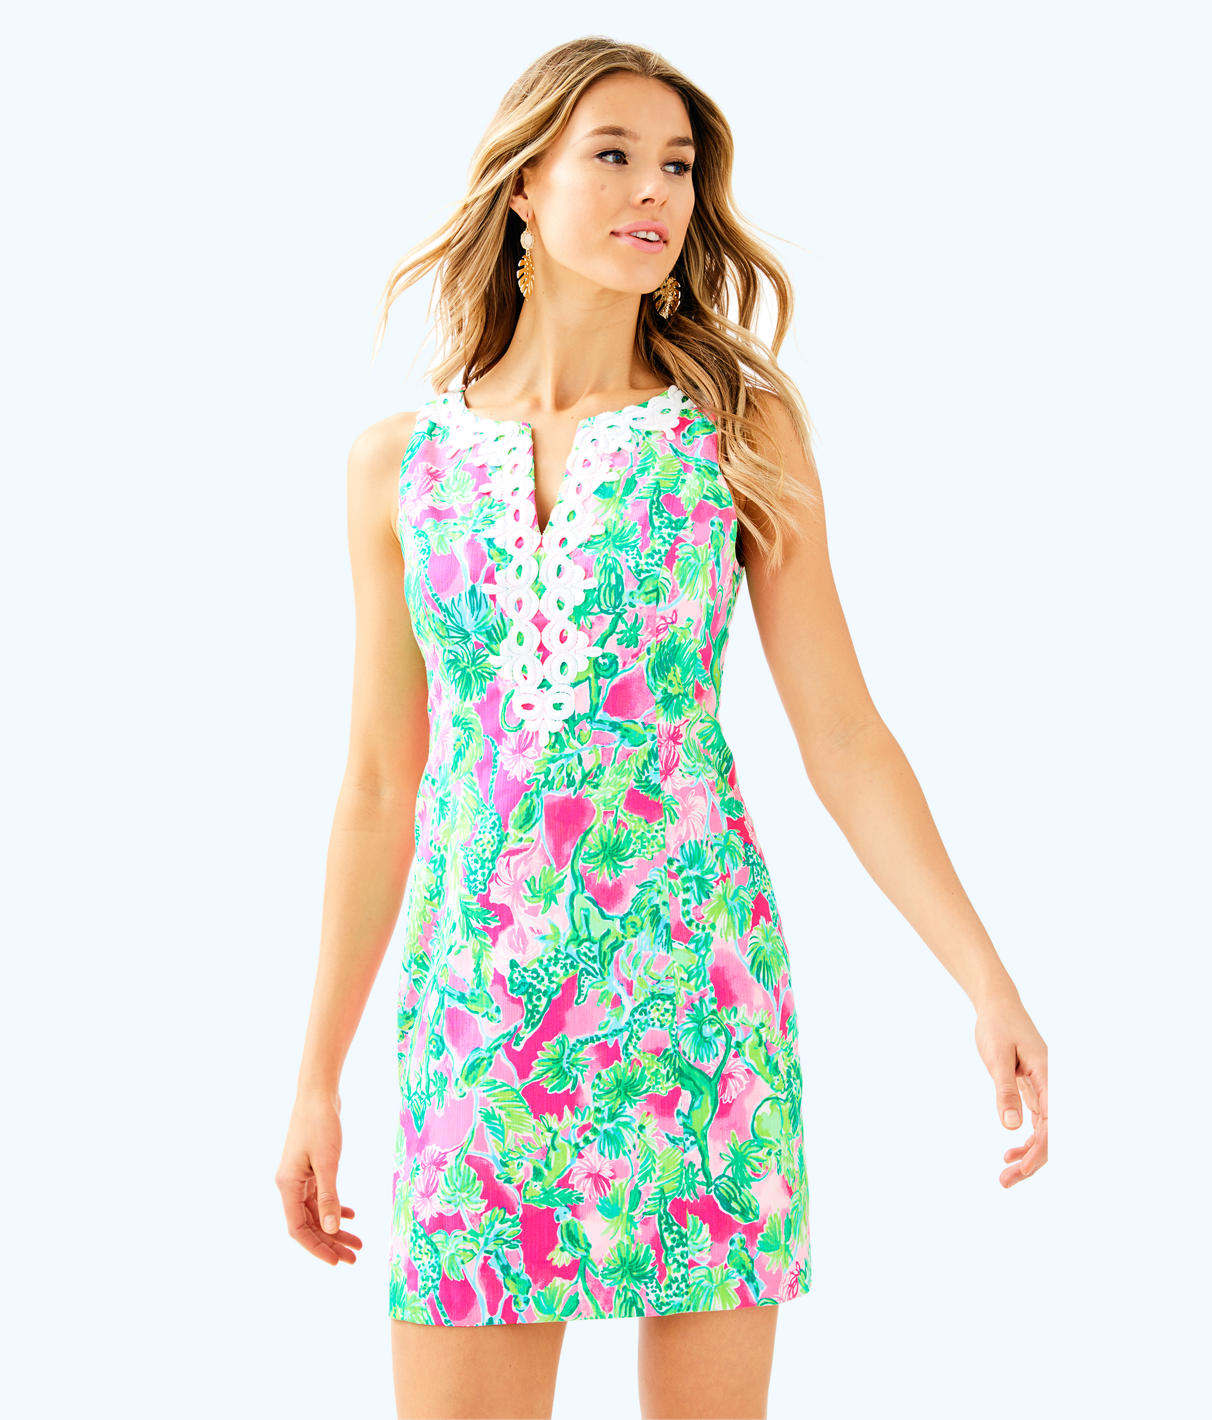 Lilly Pulitzer Lilly Pulitzer Womens Gabby Shift Dress